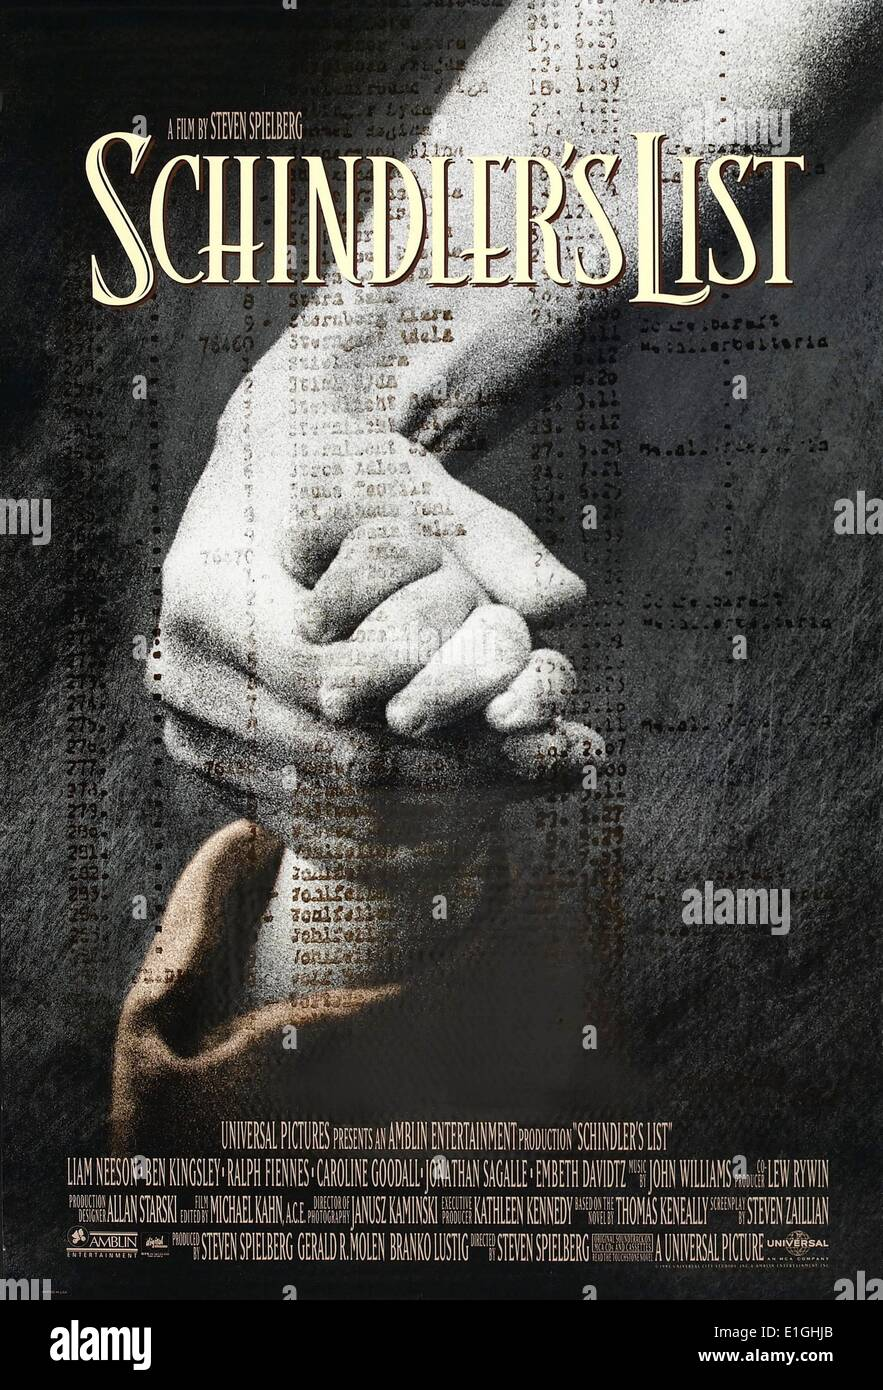 'Schindler's List' a 1993 American epic historical drama film, winner of 7 Oscars including Best Picture, - Stock Image